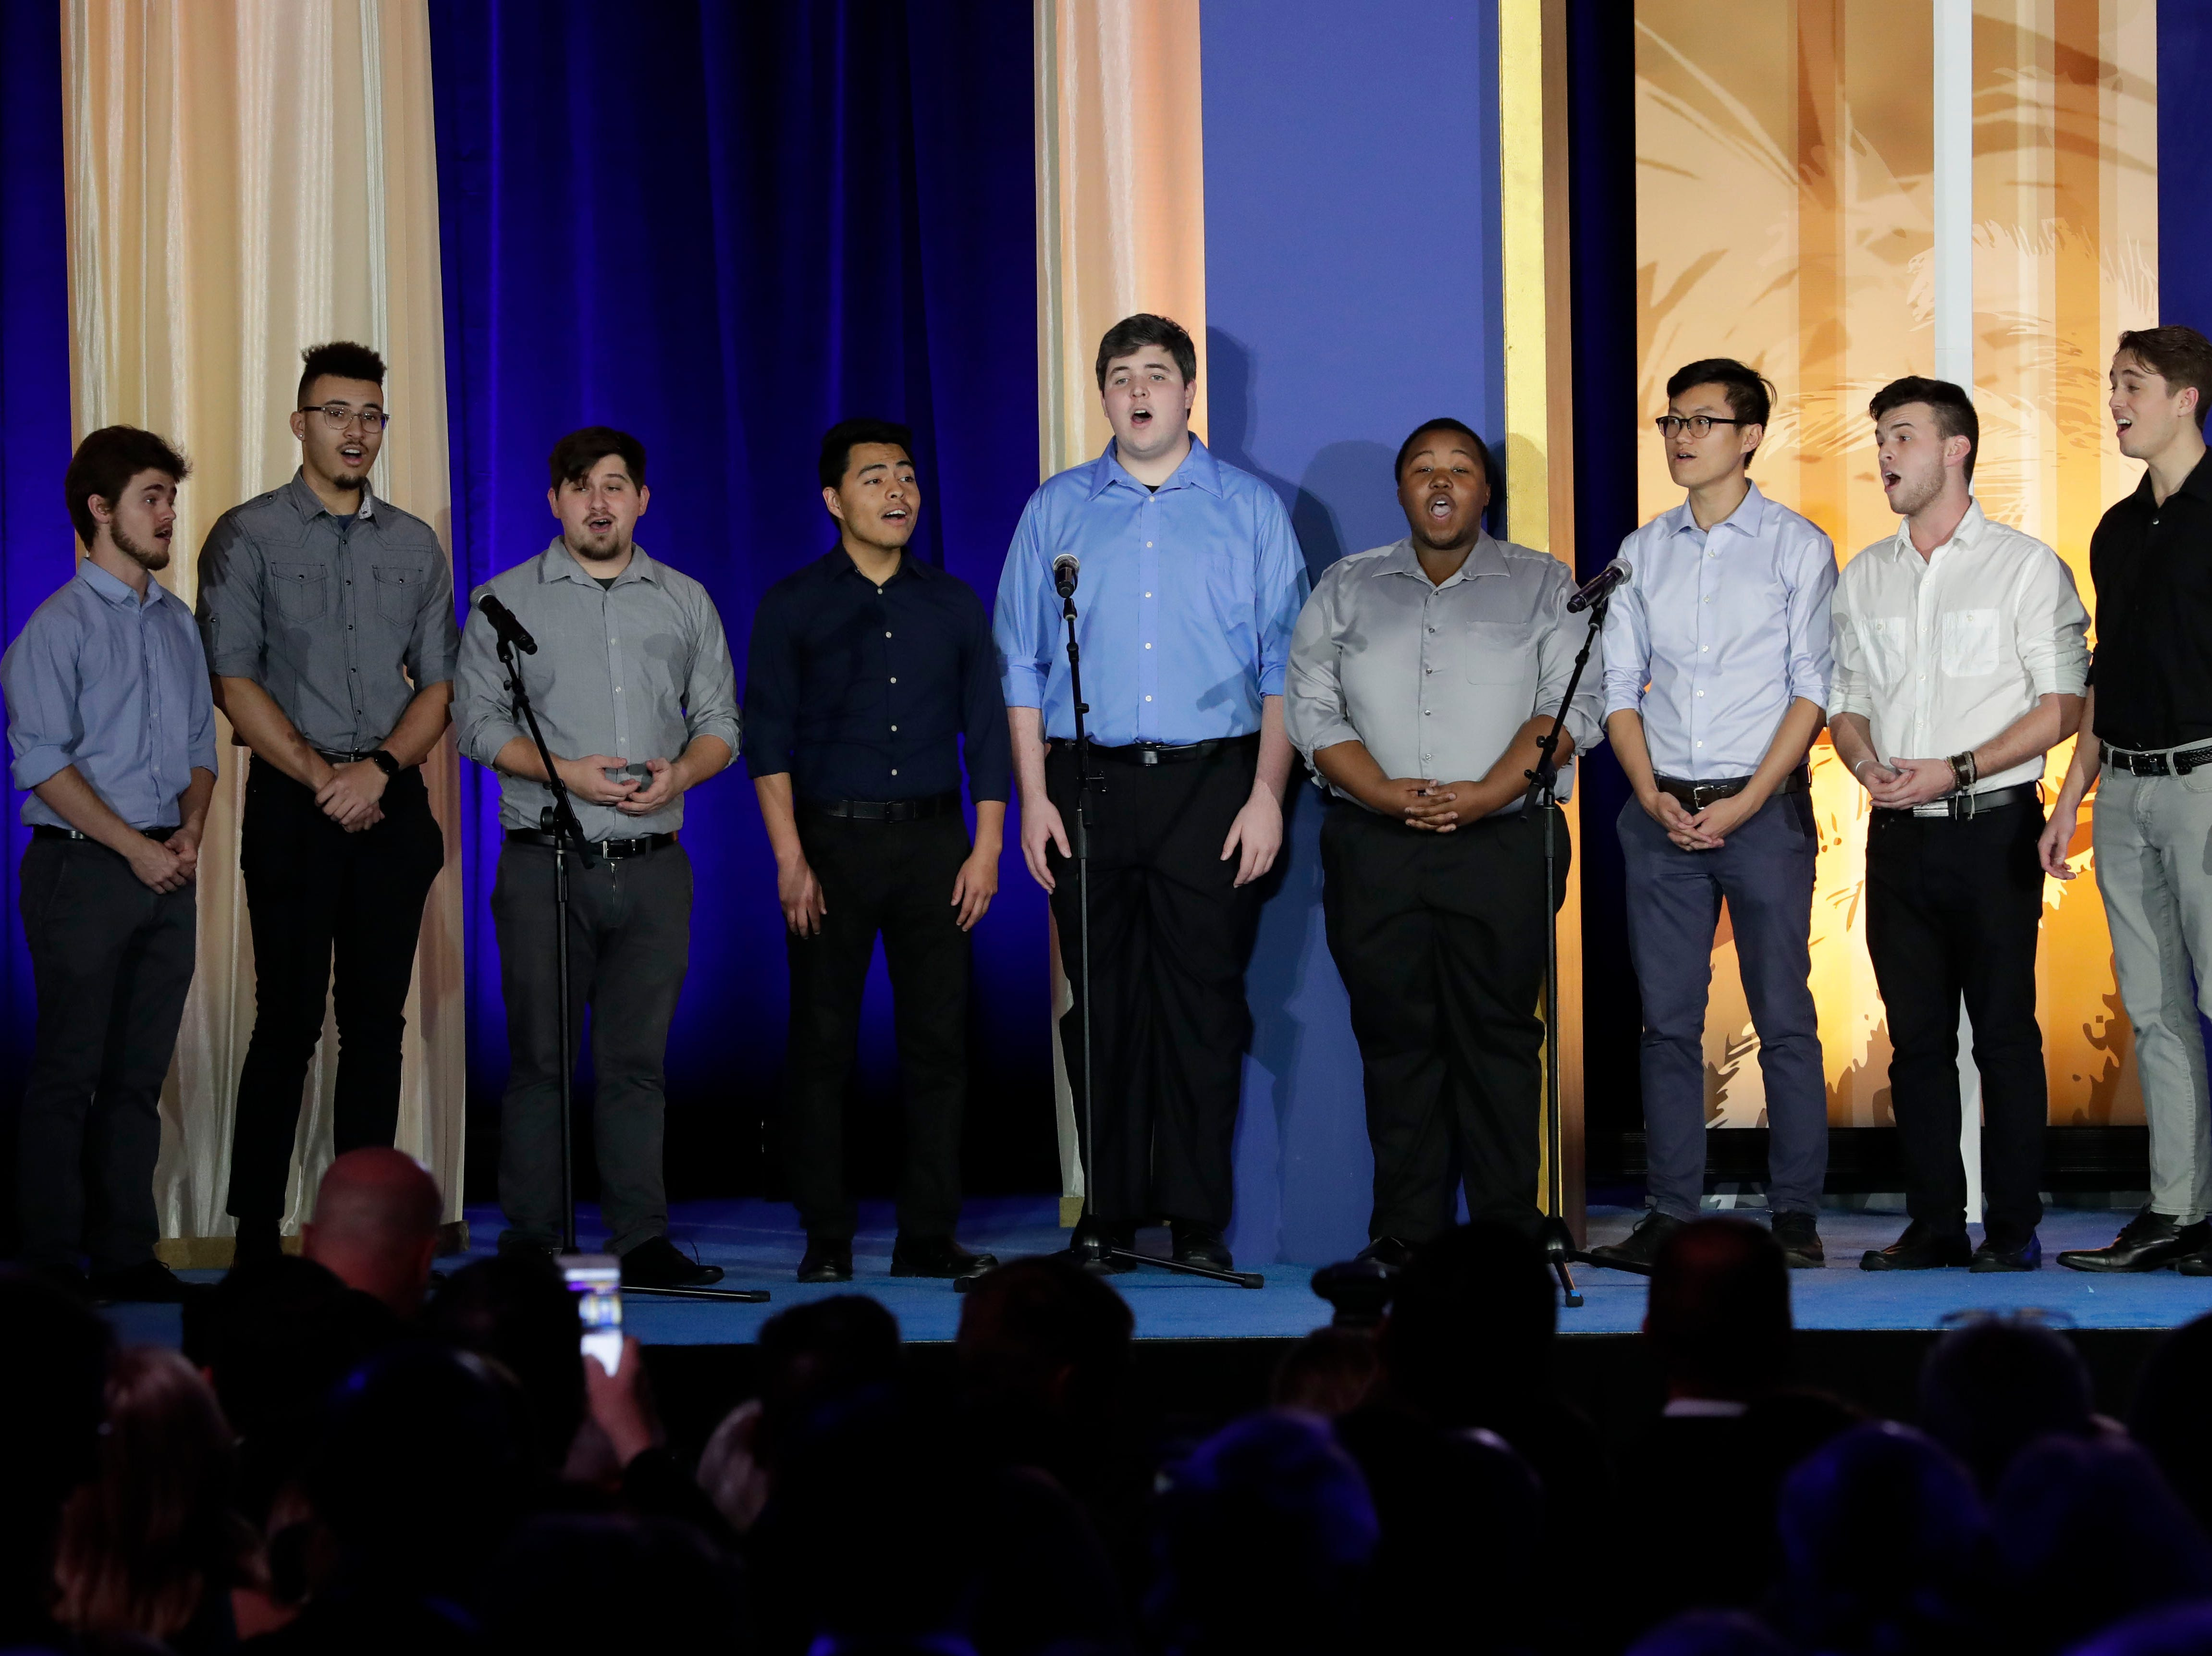 Hundreds of guests from all over Florida attend Florida's 46th Governor's Inaugural Ball at the Tucker Civic Center, Tuesday, Jan. 8, 2019. An a cappella boys group performs the national anthem.